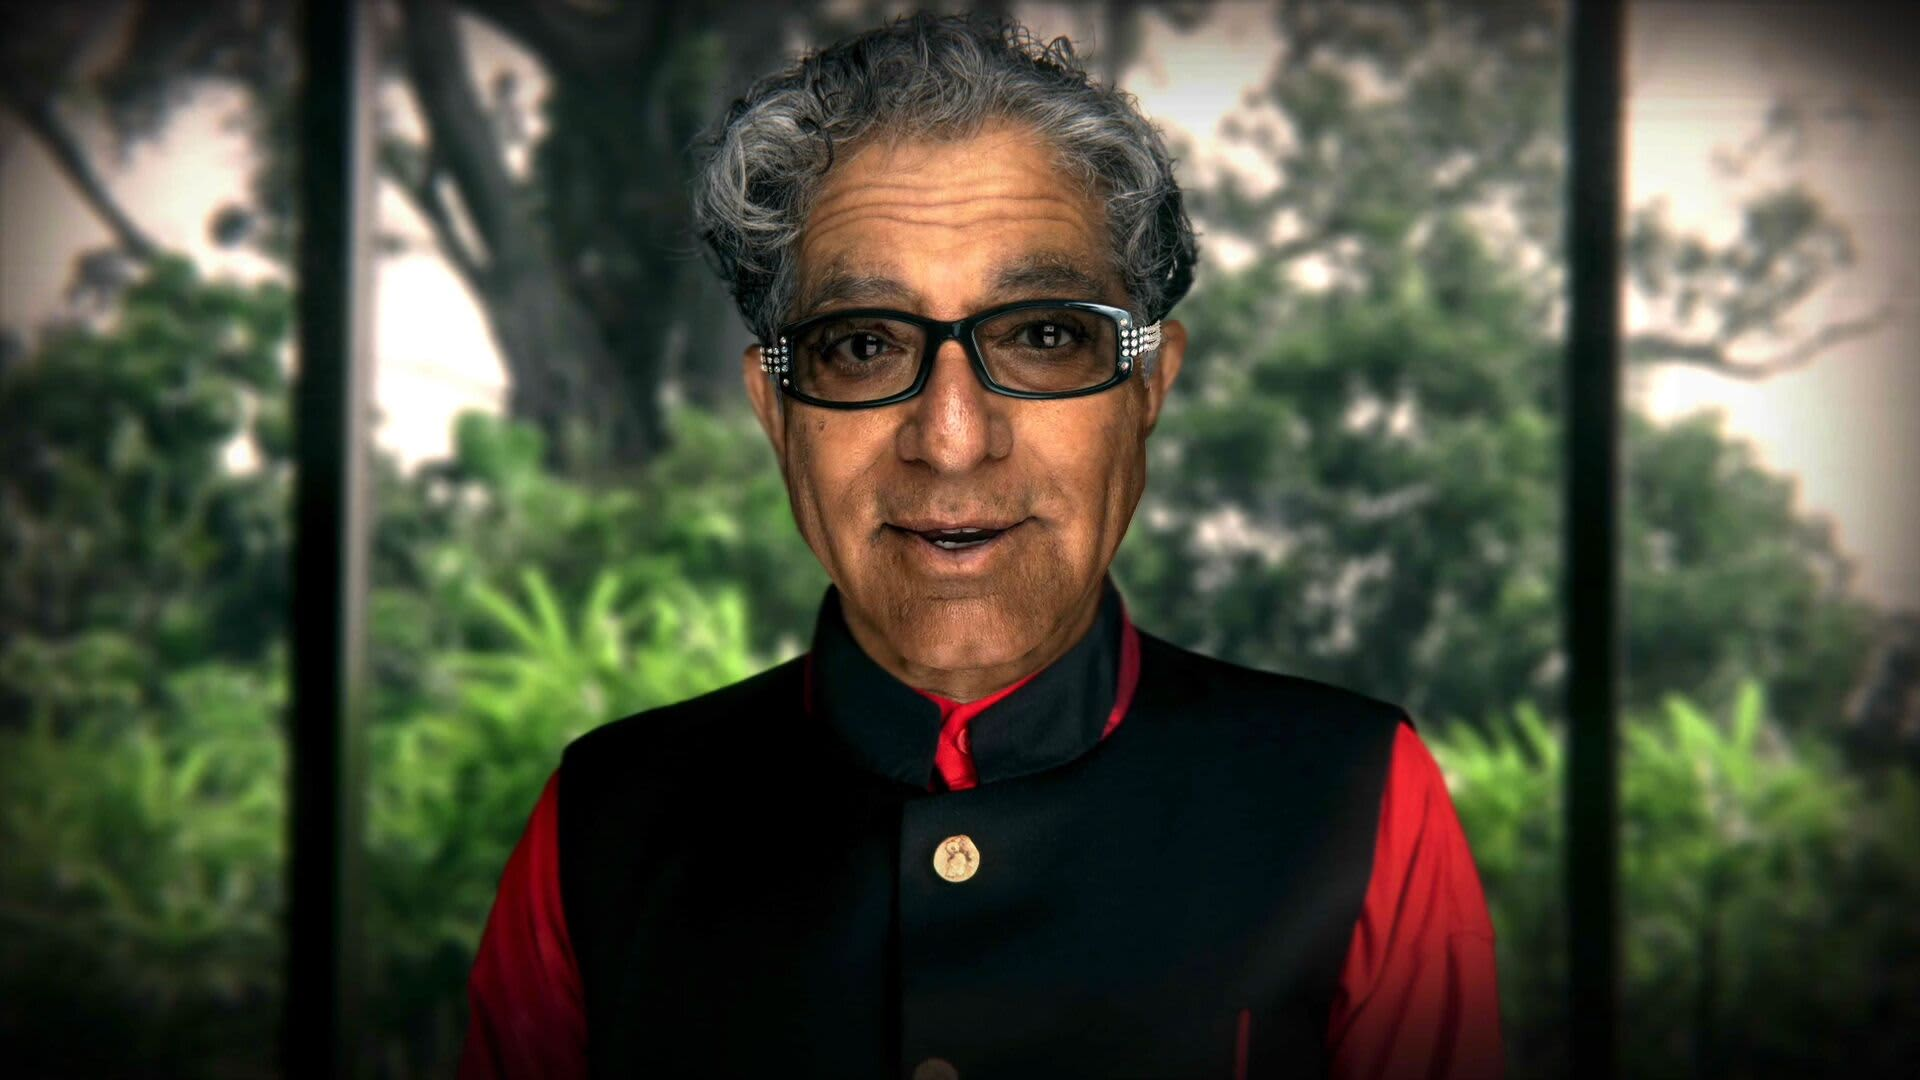 Deepak Chopra is coming to phones as an AI chatbot